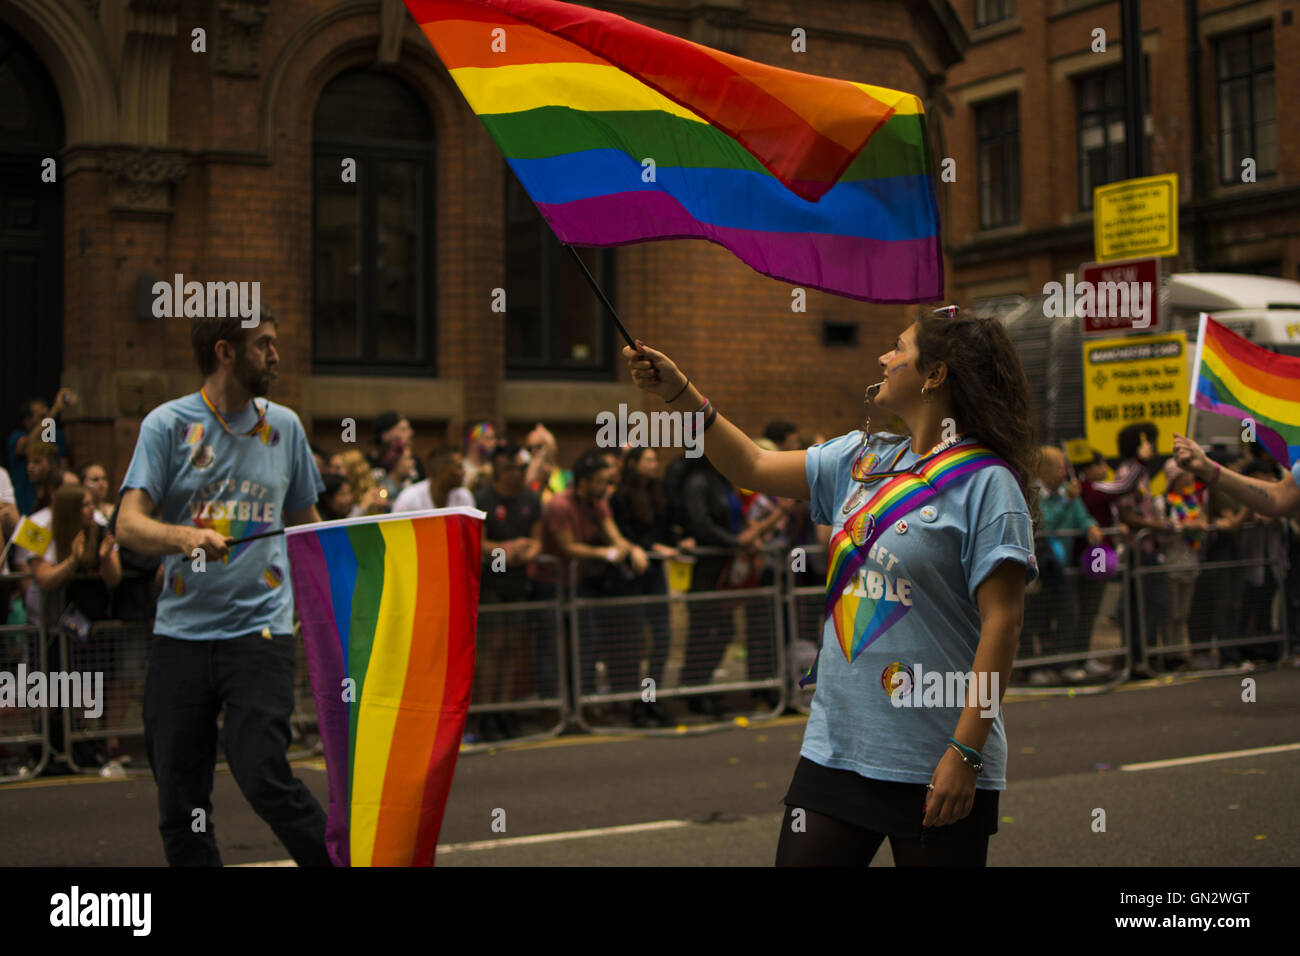 Manchester, UK. 27th August, 2016. Manchester Pride Parade. manchester pride big weekend, woman waves gay pride Stock Photo